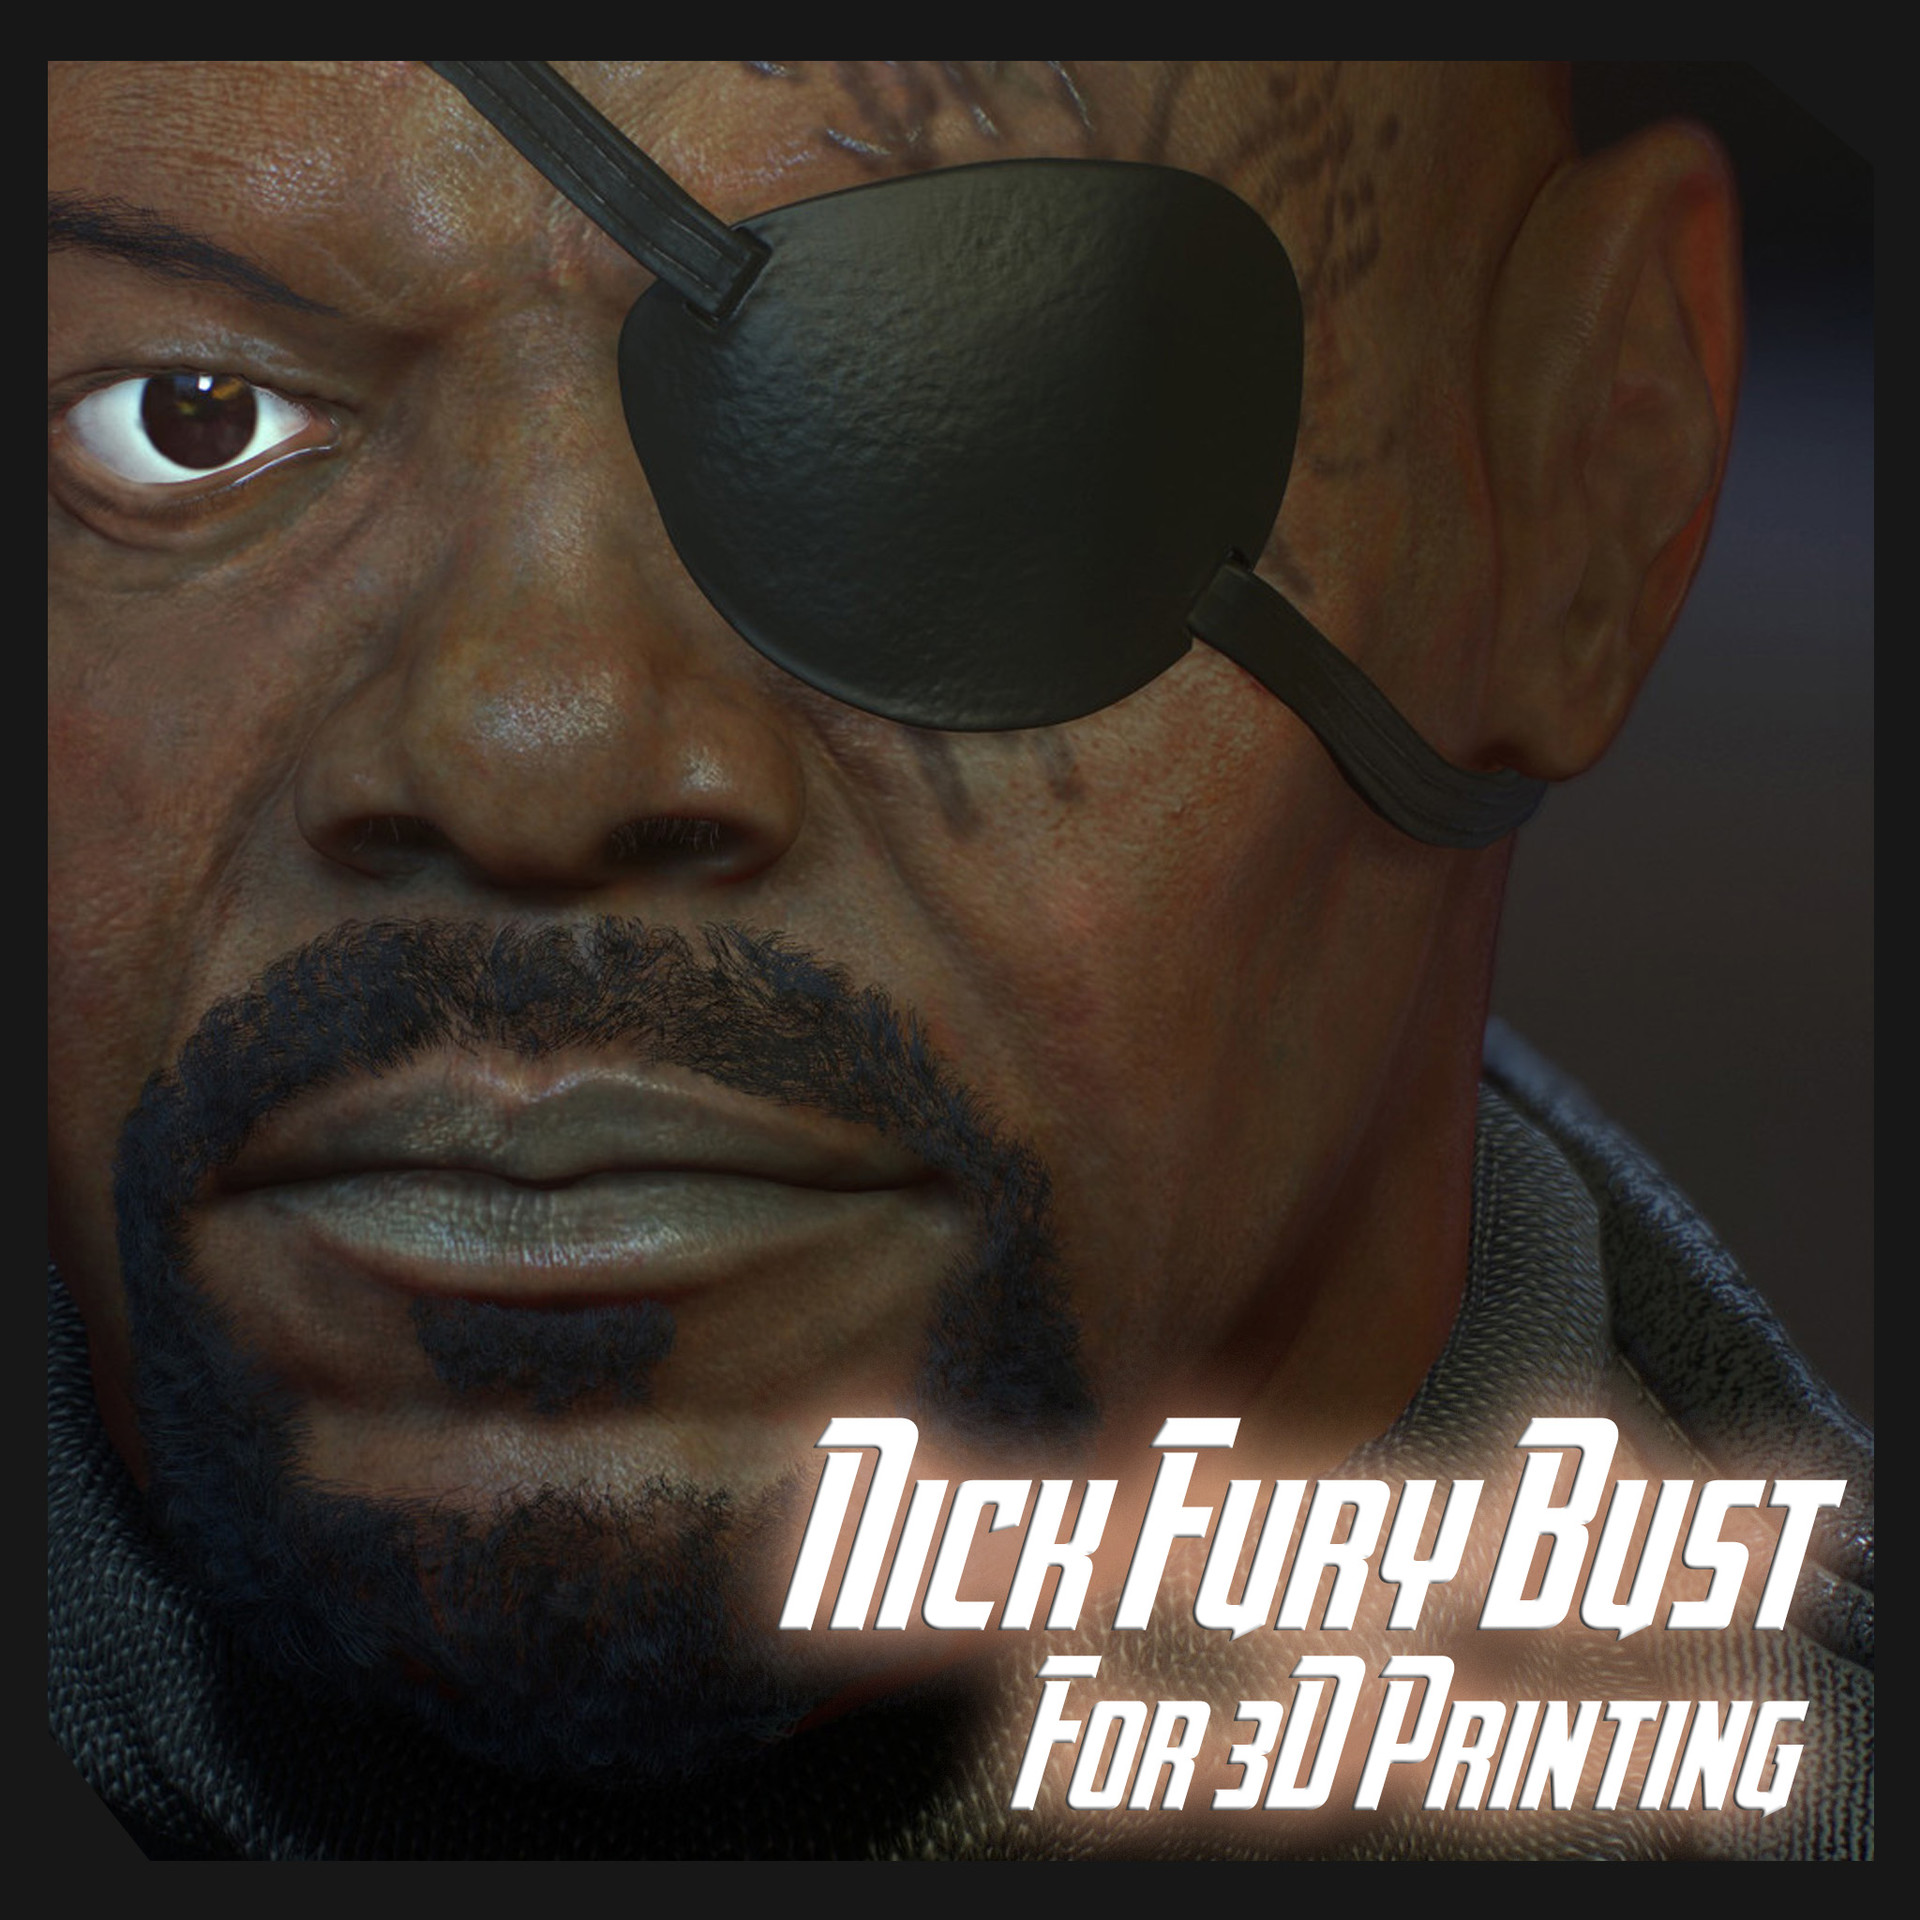 Nick Fury Bust For 3D Printing.